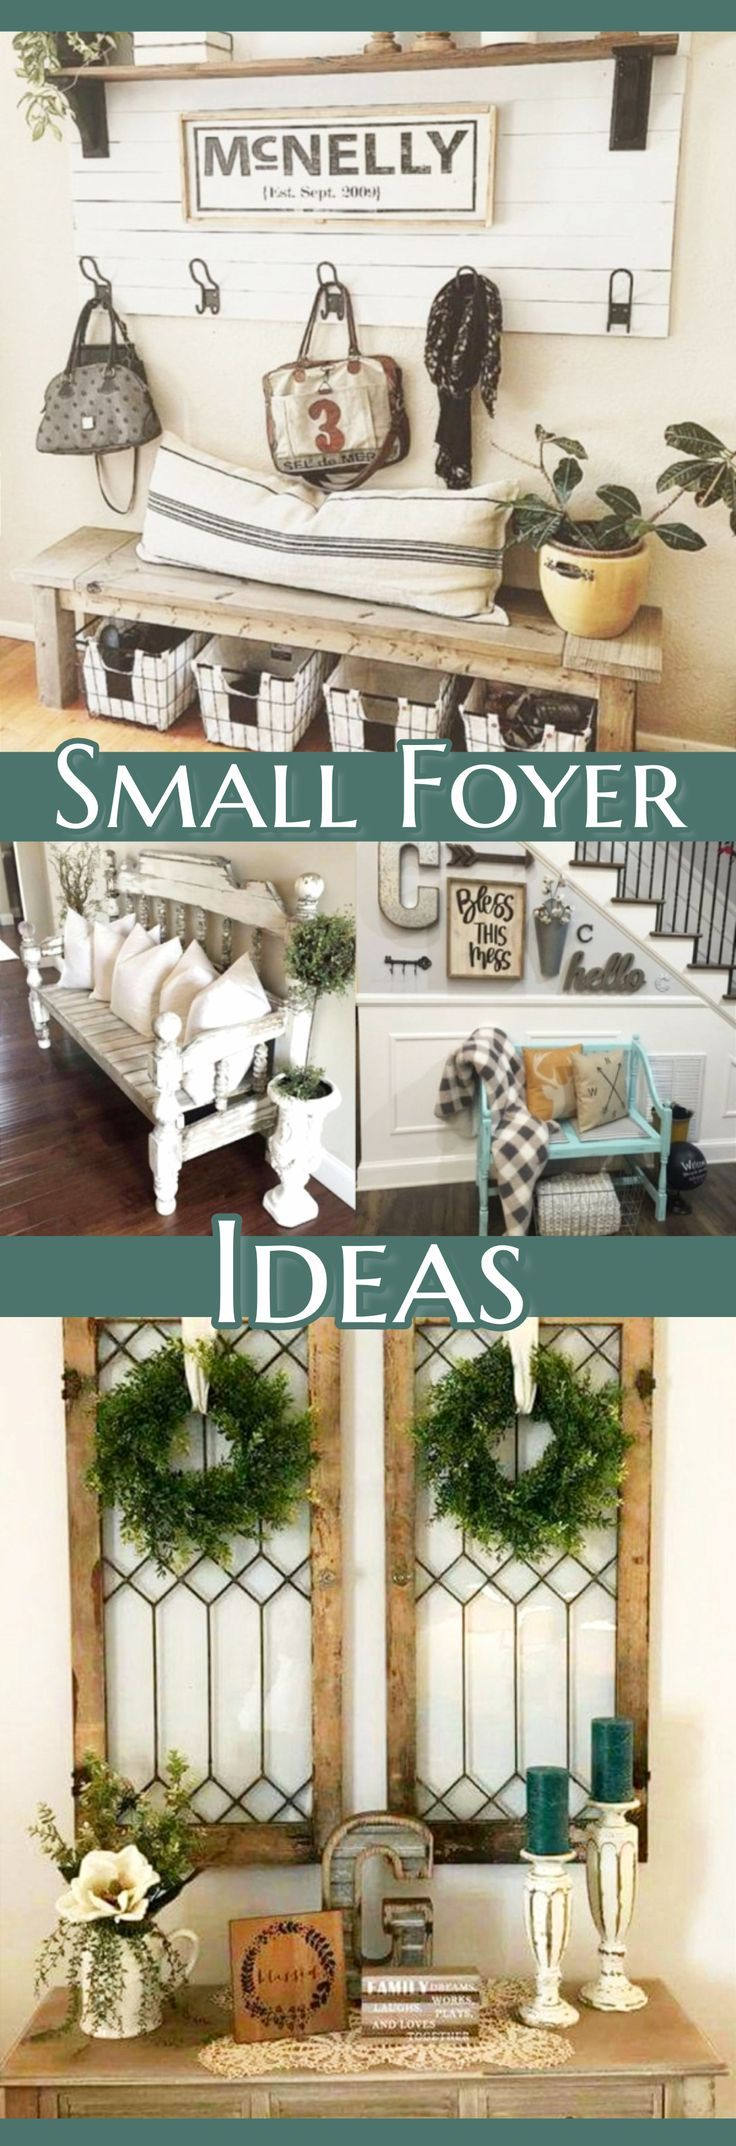 Small entryway ideas for the foyer in your house or apartment. These are beautiful DIY entryway decor and foyer decorating ideas that are perfect for small areas.